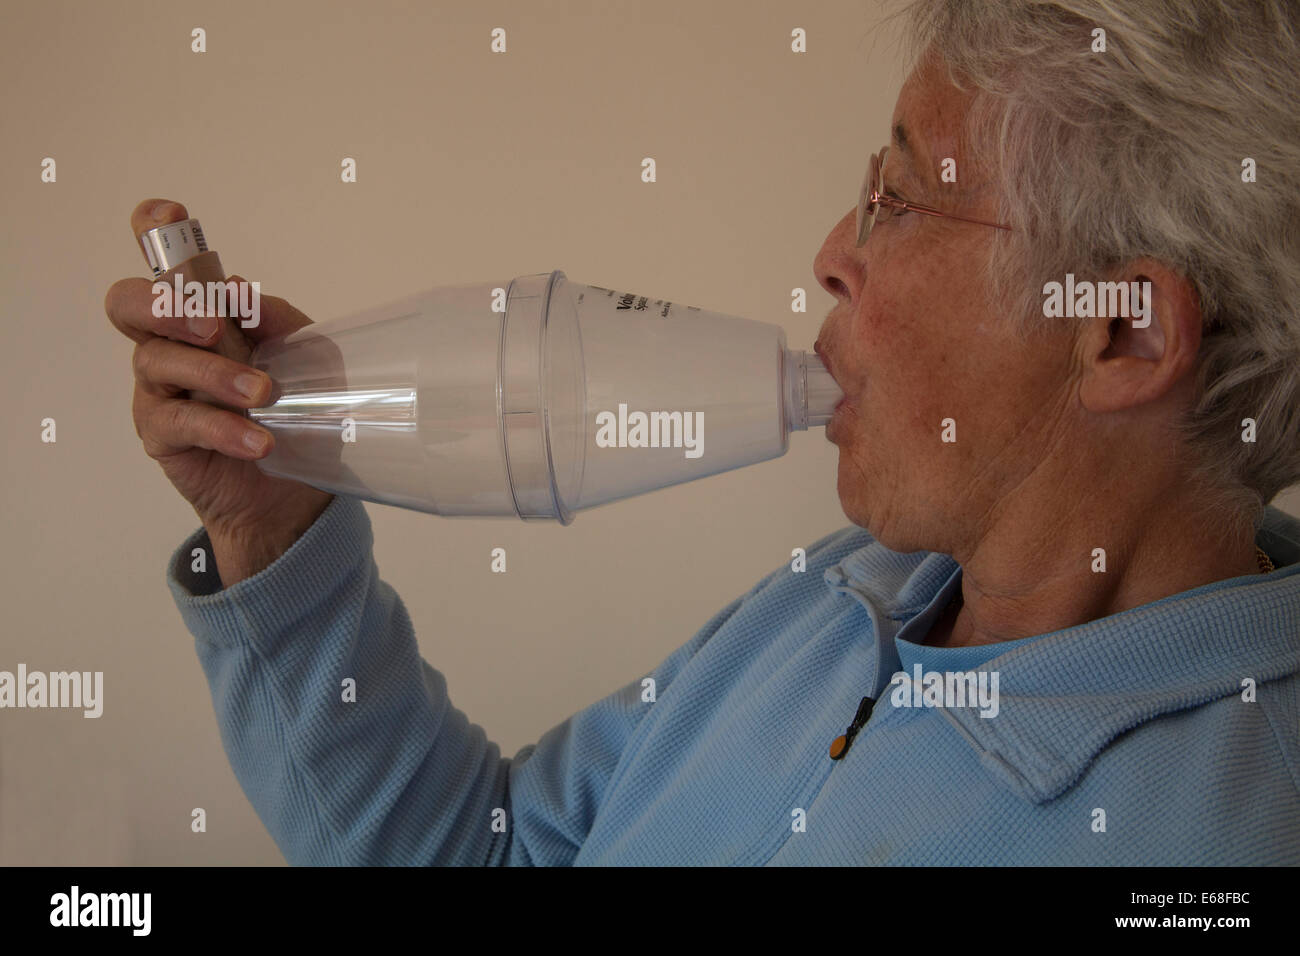 Elderly asthmatic woman using a Volumatic spacer device for steroid inhaler Stock Photo